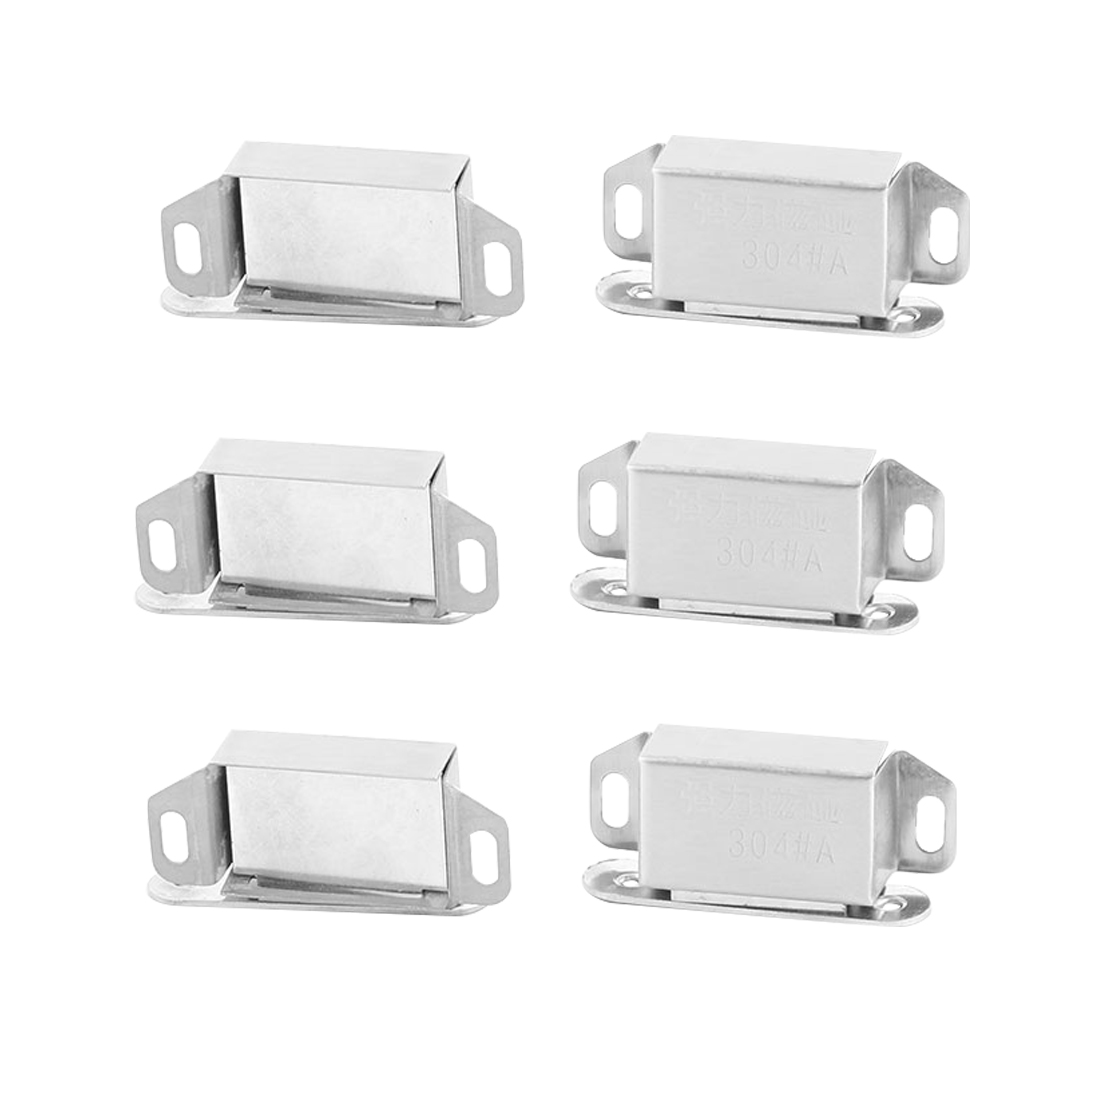 Home Stainless Steel Door Wardrobe Closet Stopper Holder Magnetic Catch Latch 6pcs